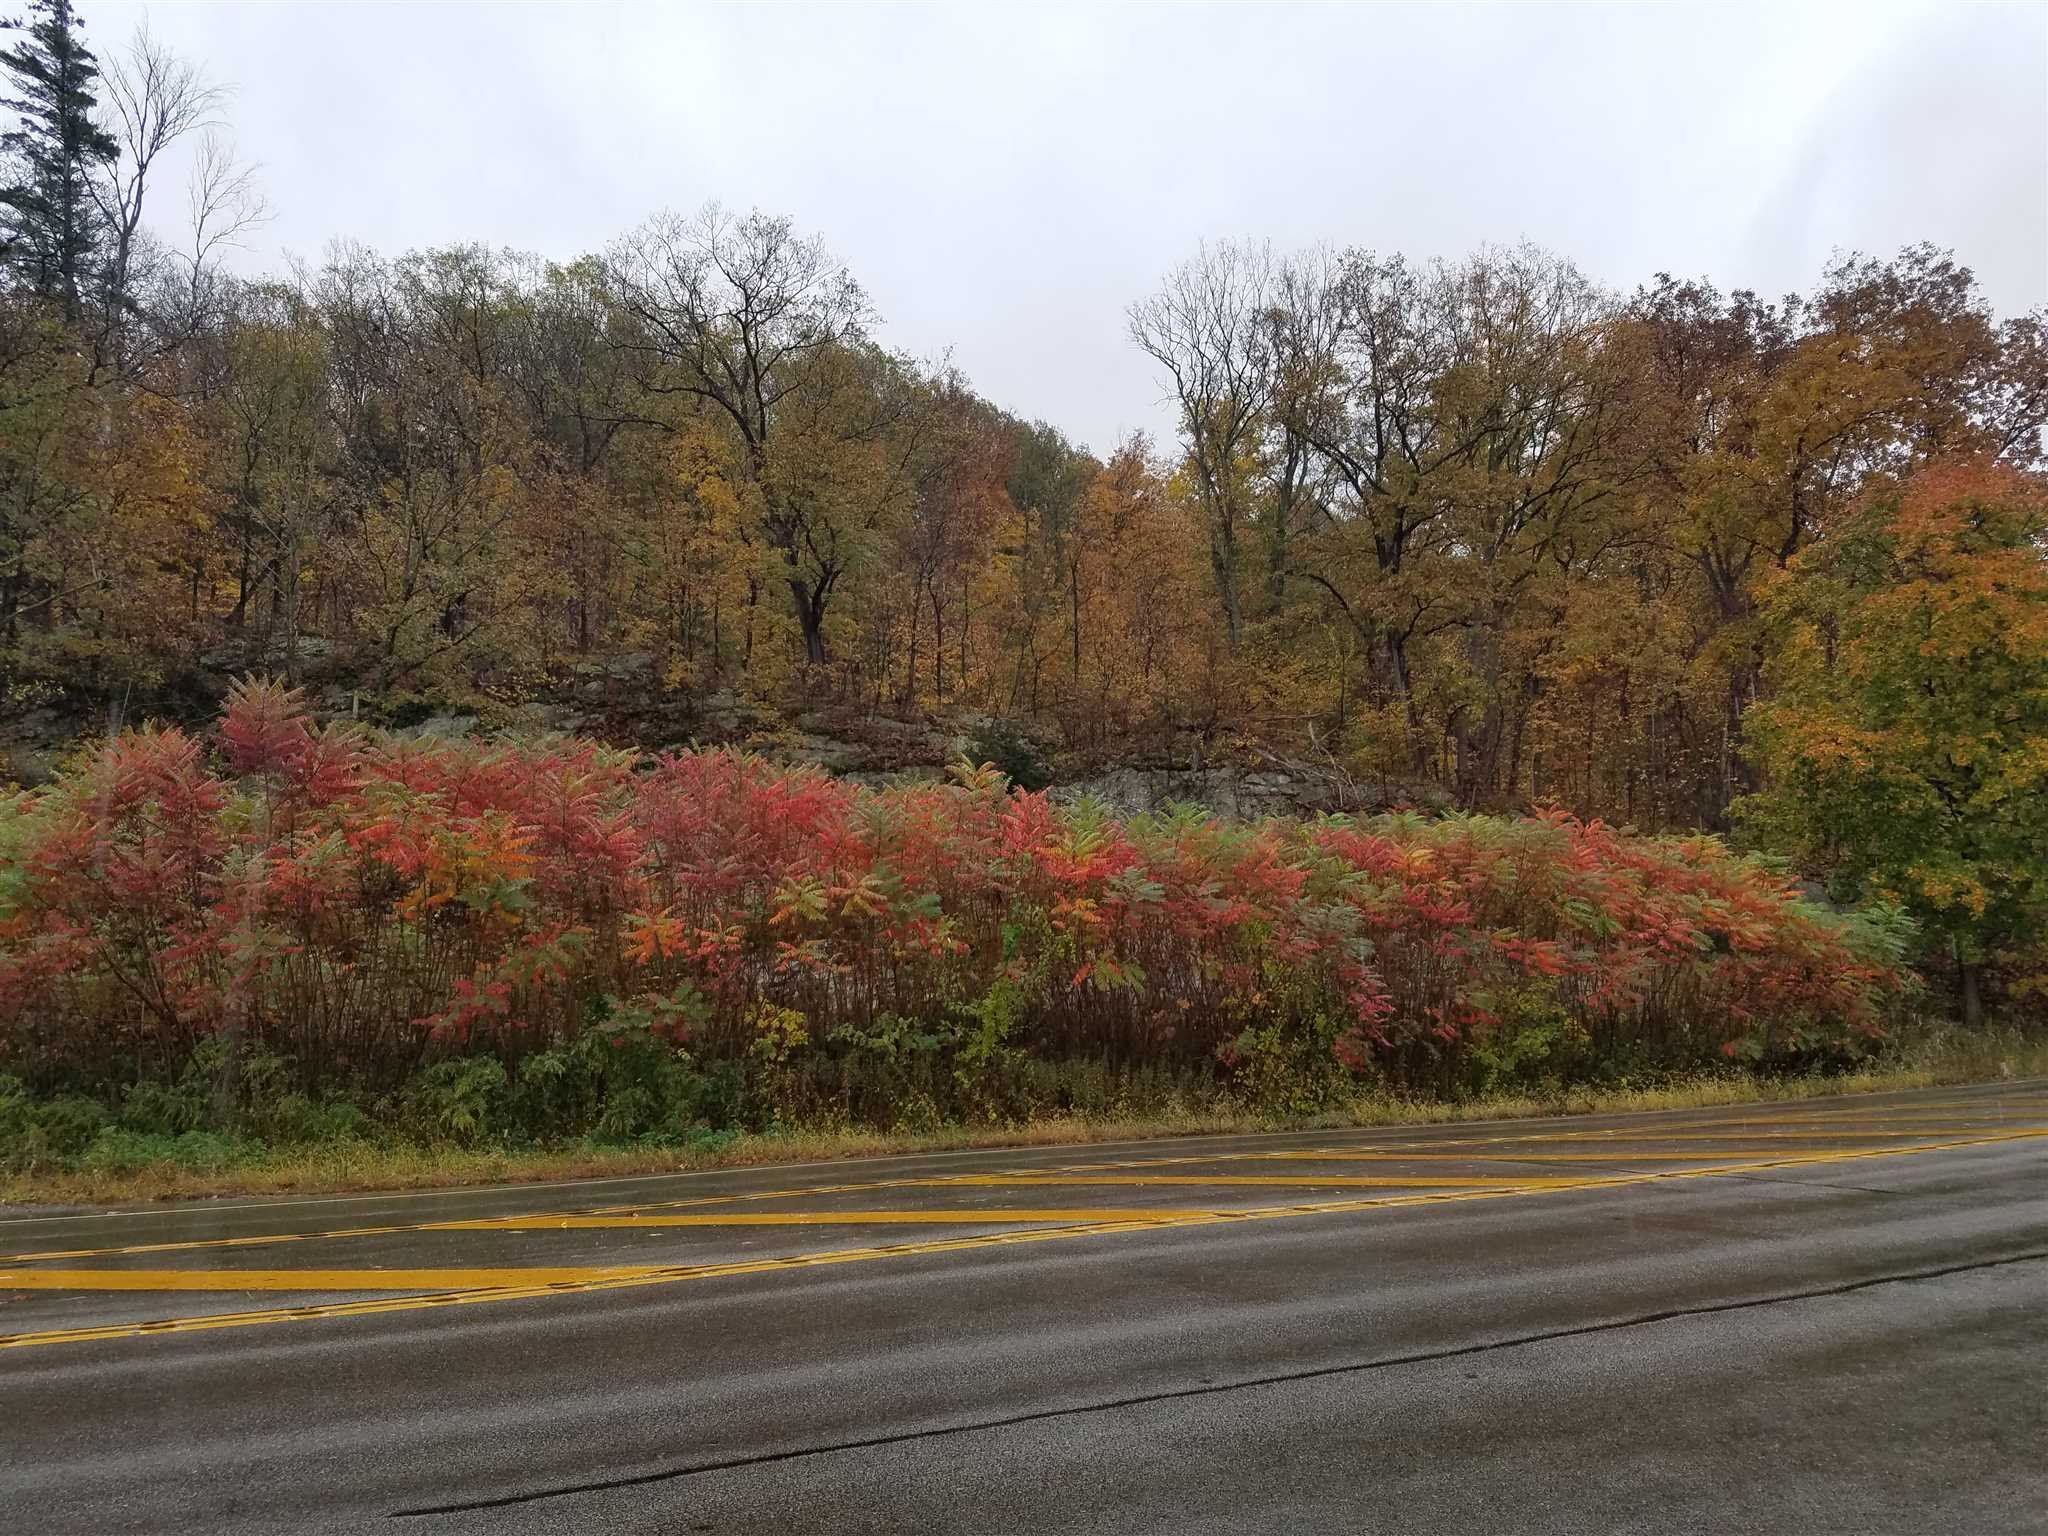 Land for Sale at ROUTE 9 ROUTE 9 Fishkill, New York 12524 United States